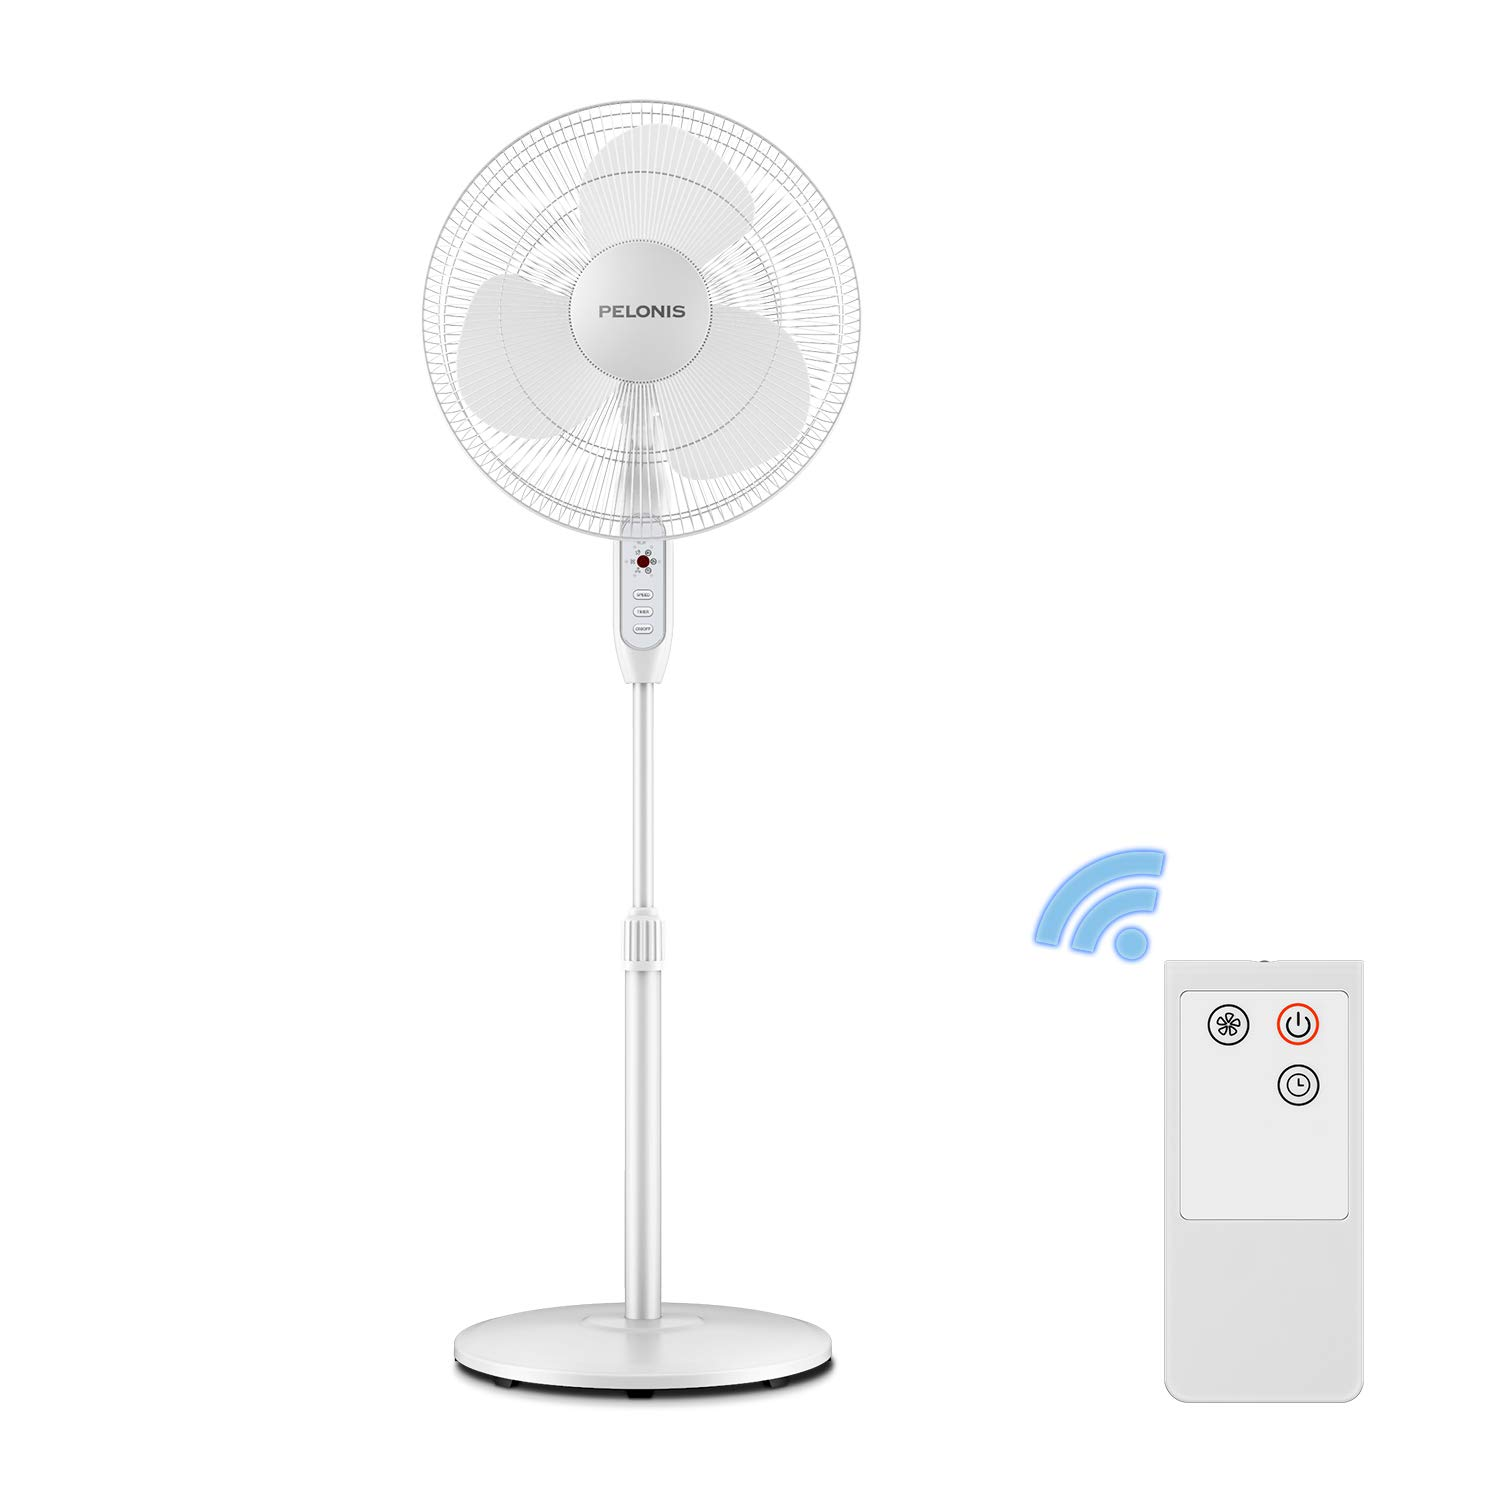 Pelonis 16-Inch 3-Speed Oscillating Pedestal Fan with 7-Hour Timer, Remote Control and Adjustable in Height, FS-16JR